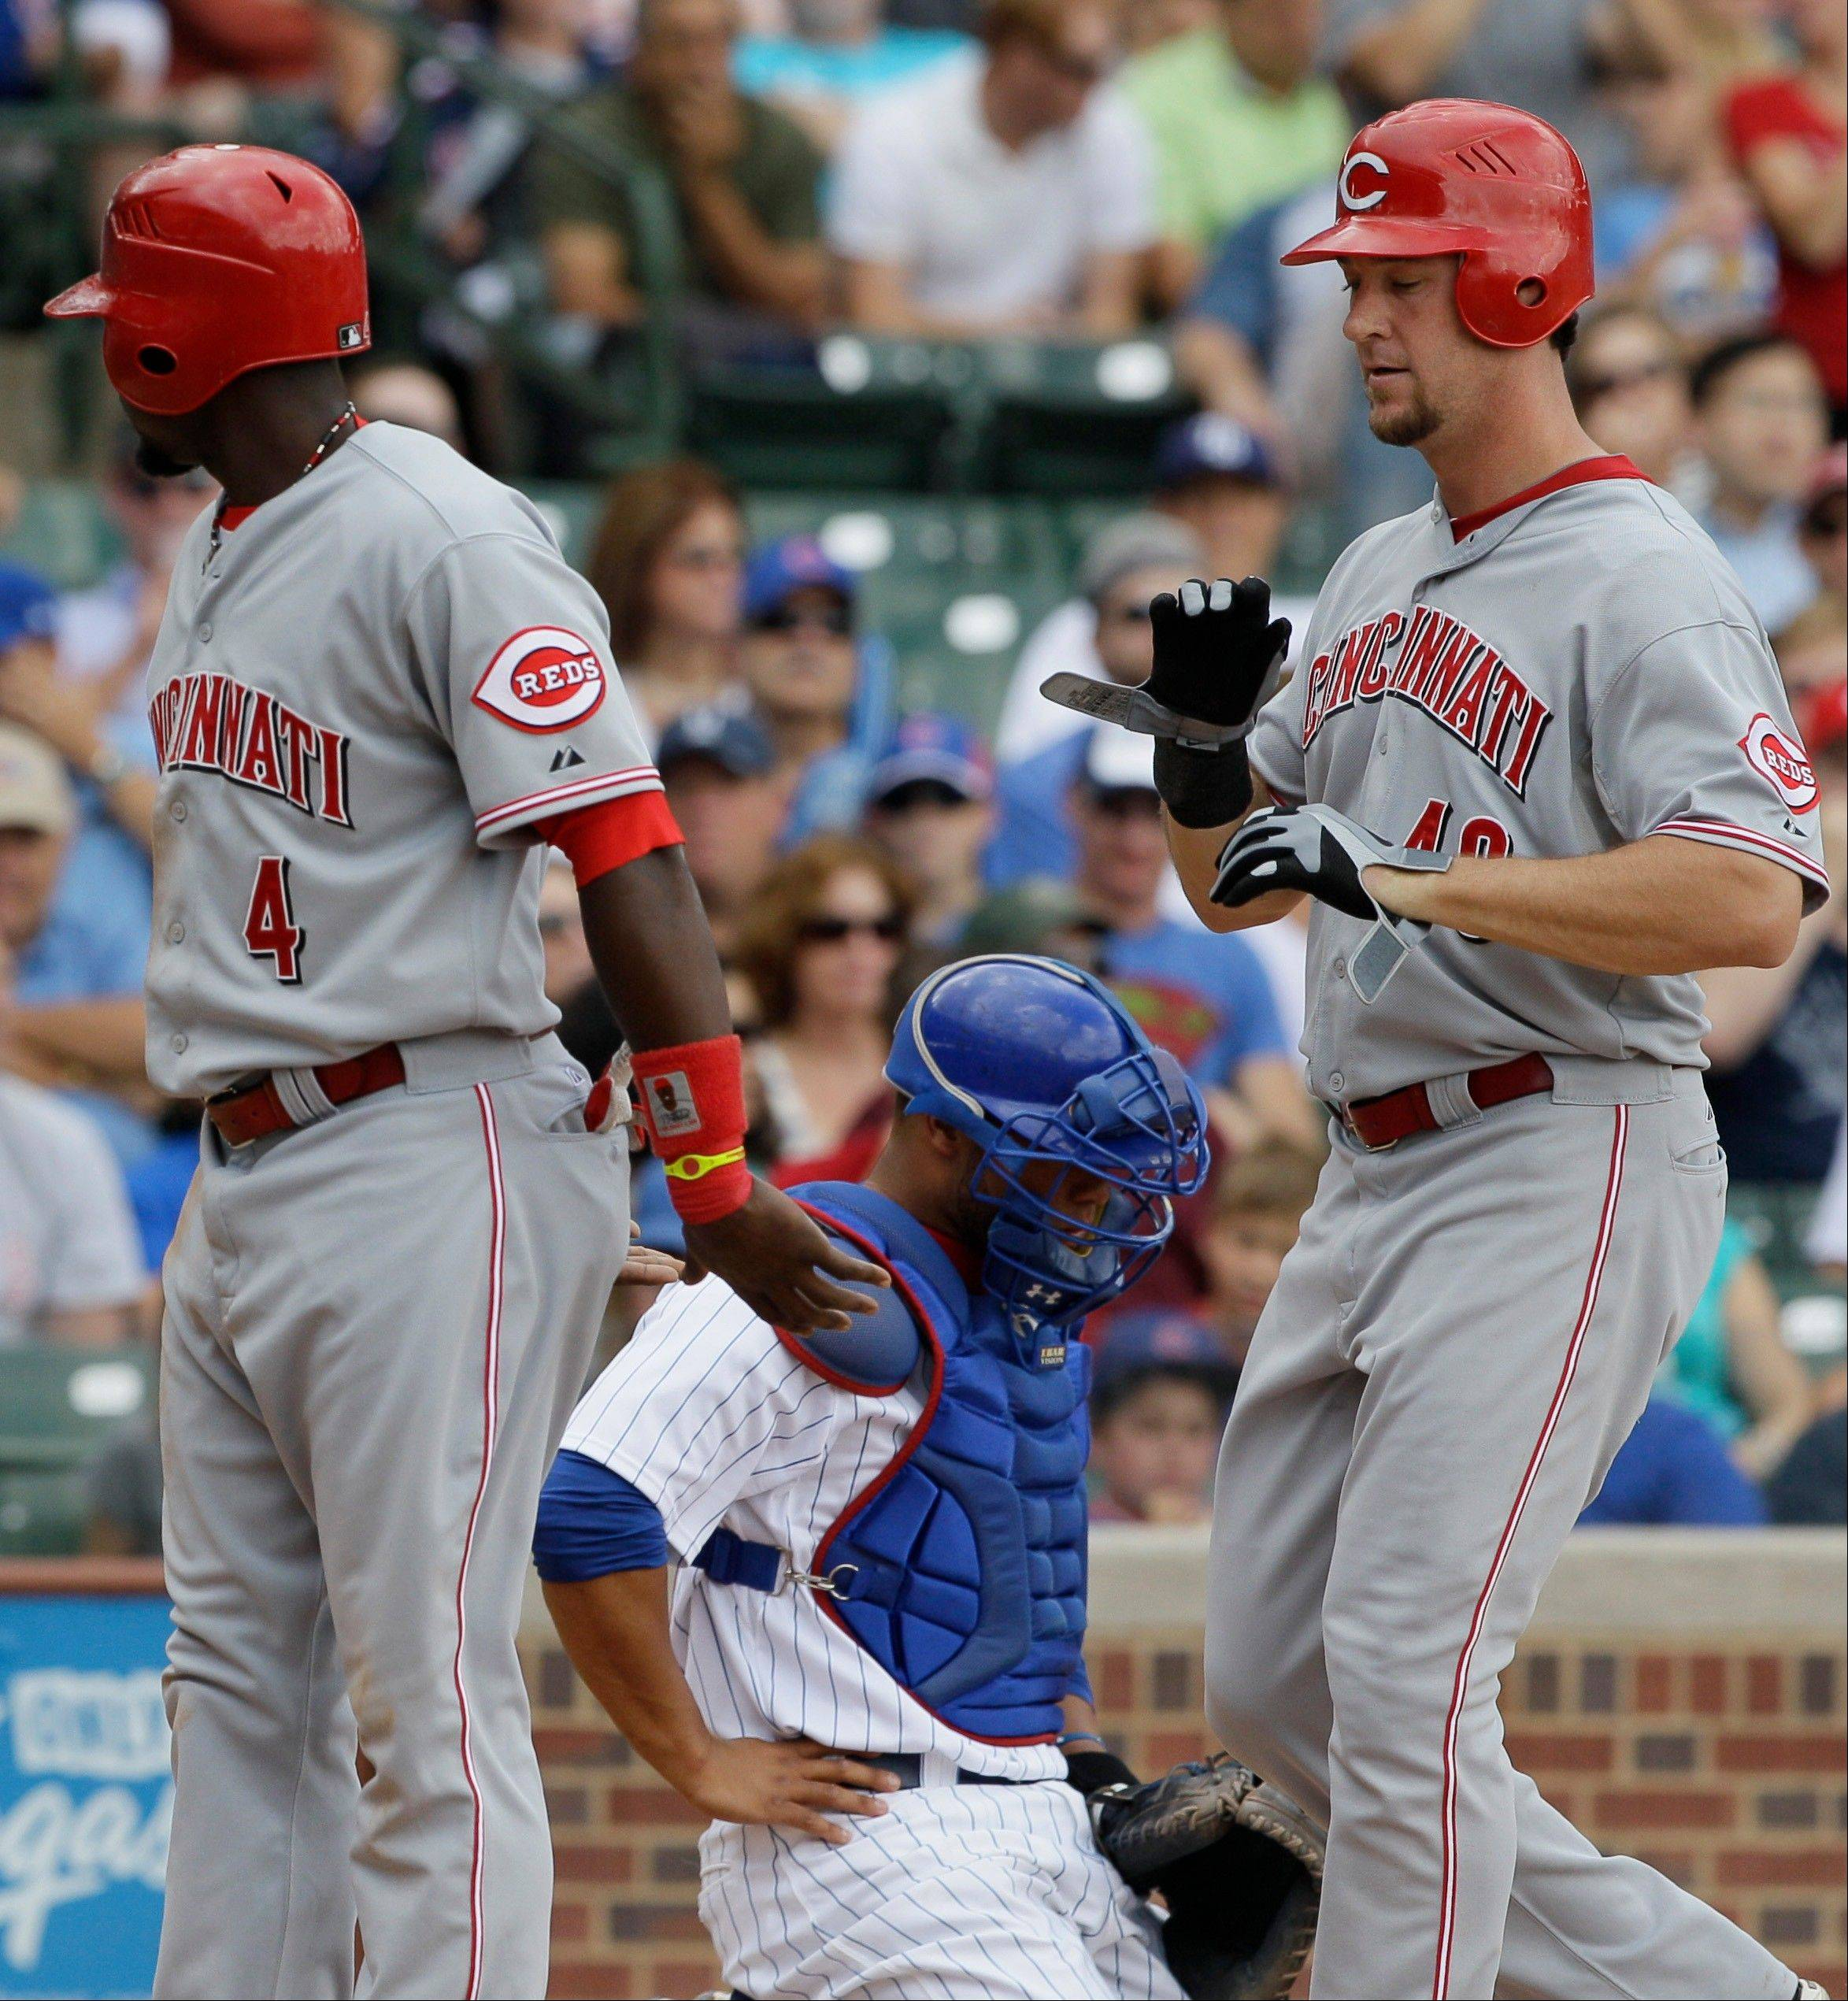 Cincinnati Reds' Ryan Ludwick, right, is congratulated by Brandon Phillips, left, after hitting a 2-run home run as Chicago Cubs catcher Welington Castillo, center, reacts as he looks down during the third inning of a baseball game in Chicago, Friday, Aug. 10, 2012.